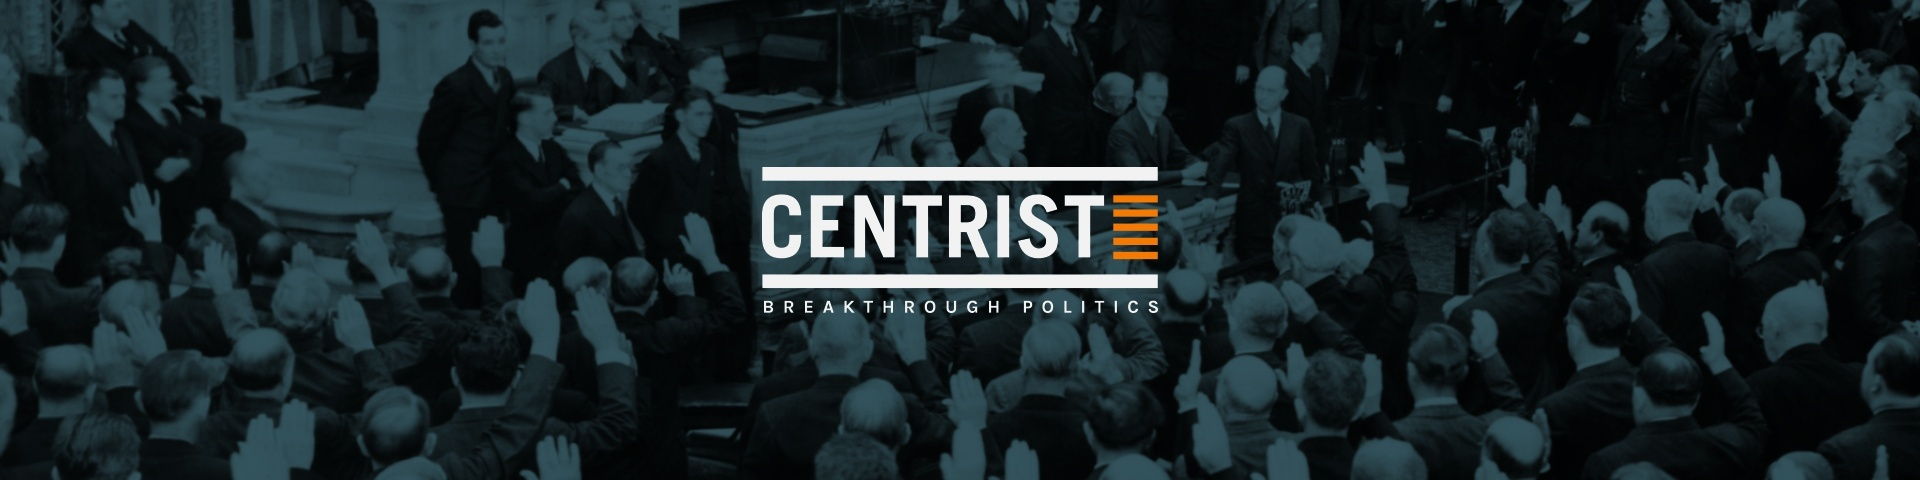 The Centrist Project